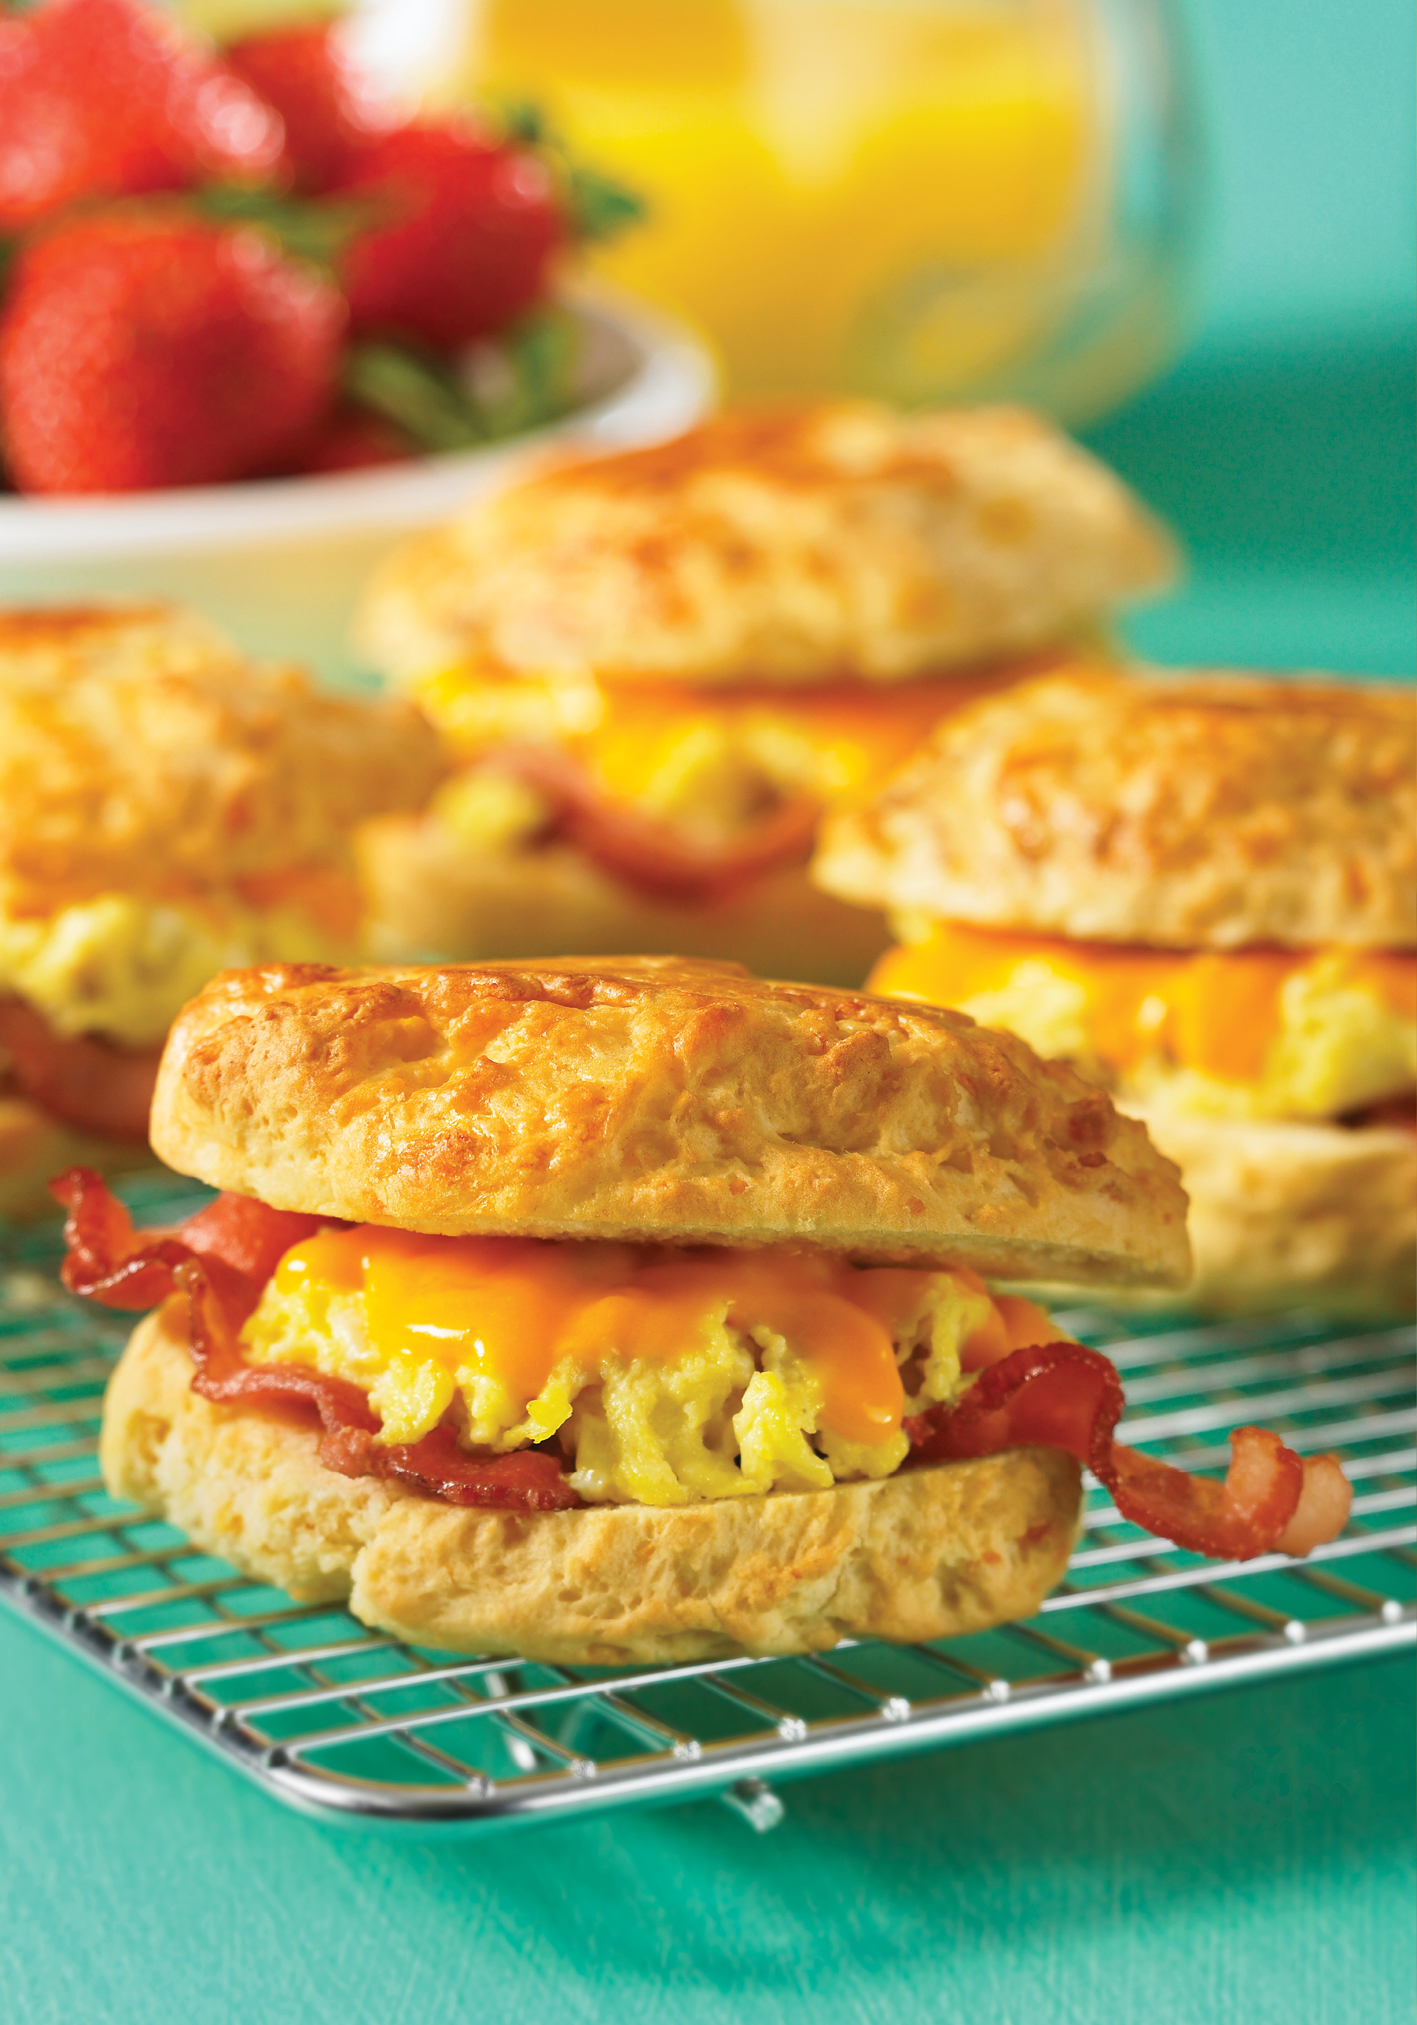 Grilled cheese, egg and bacon biscuit